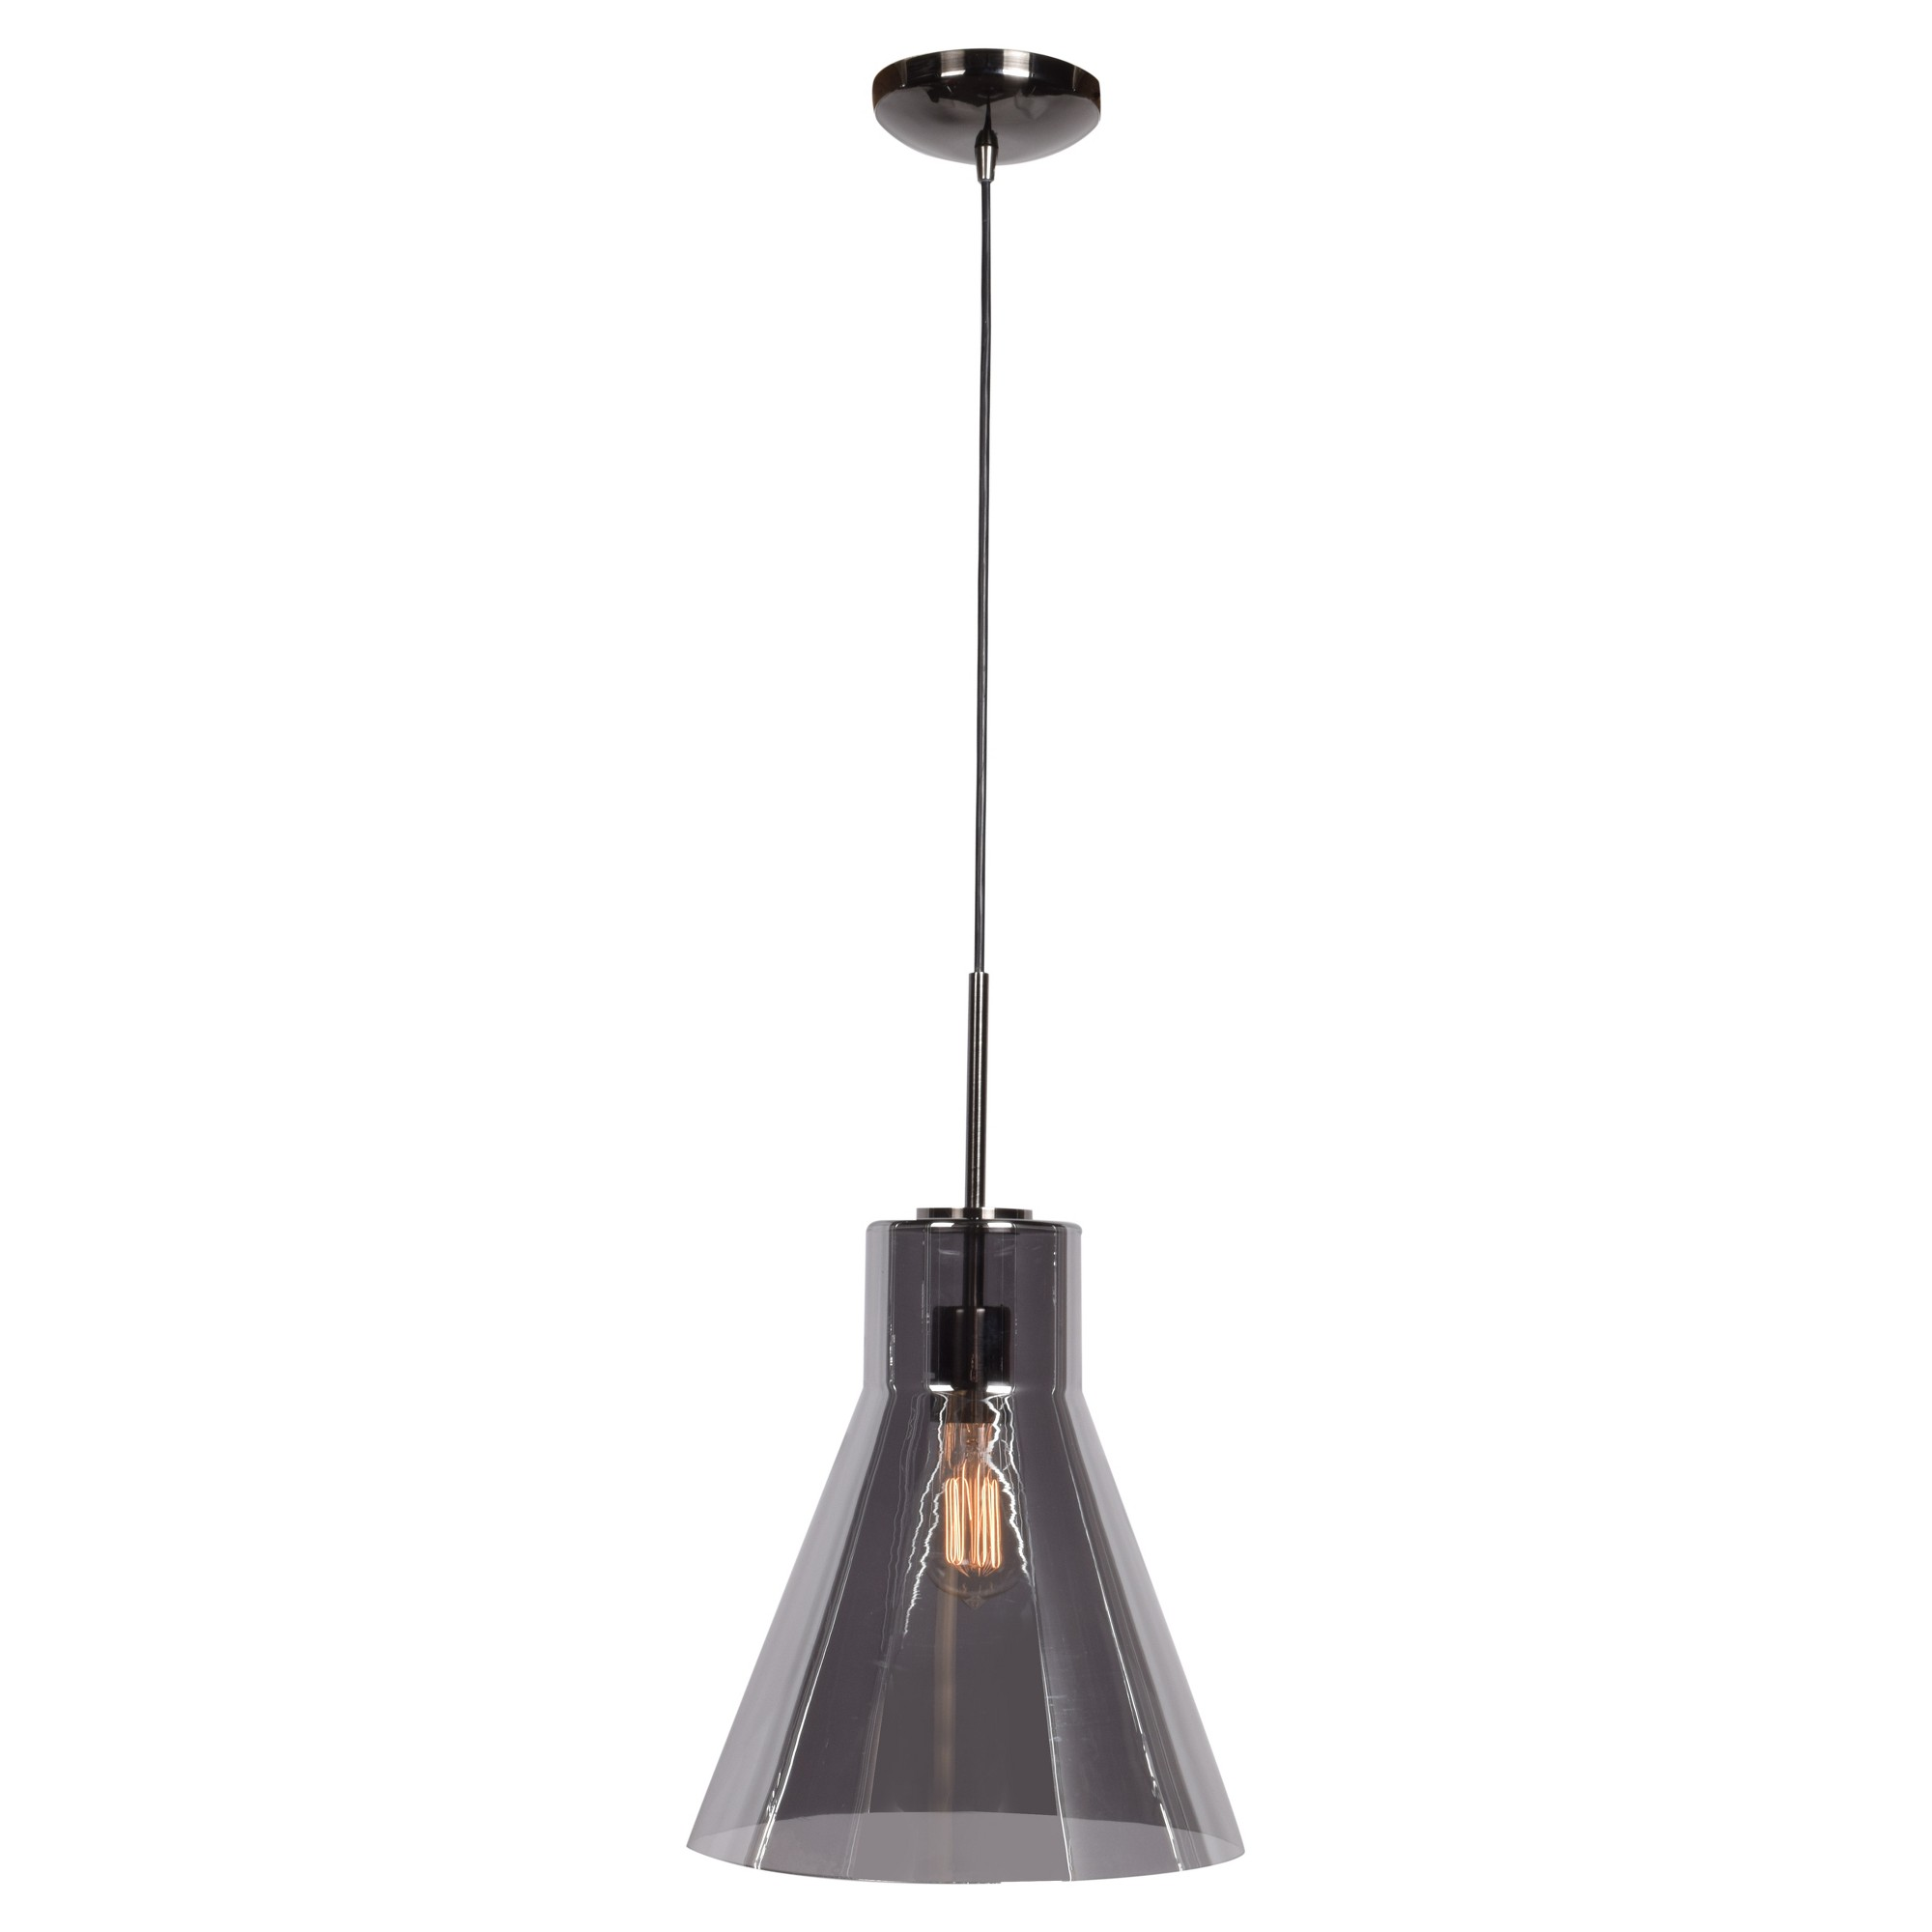 usona lighting. Access Lighting Simplicite 13.25 H 1-Light Cone Pendant - Black Chrome Smoke Glass Shade Usona S